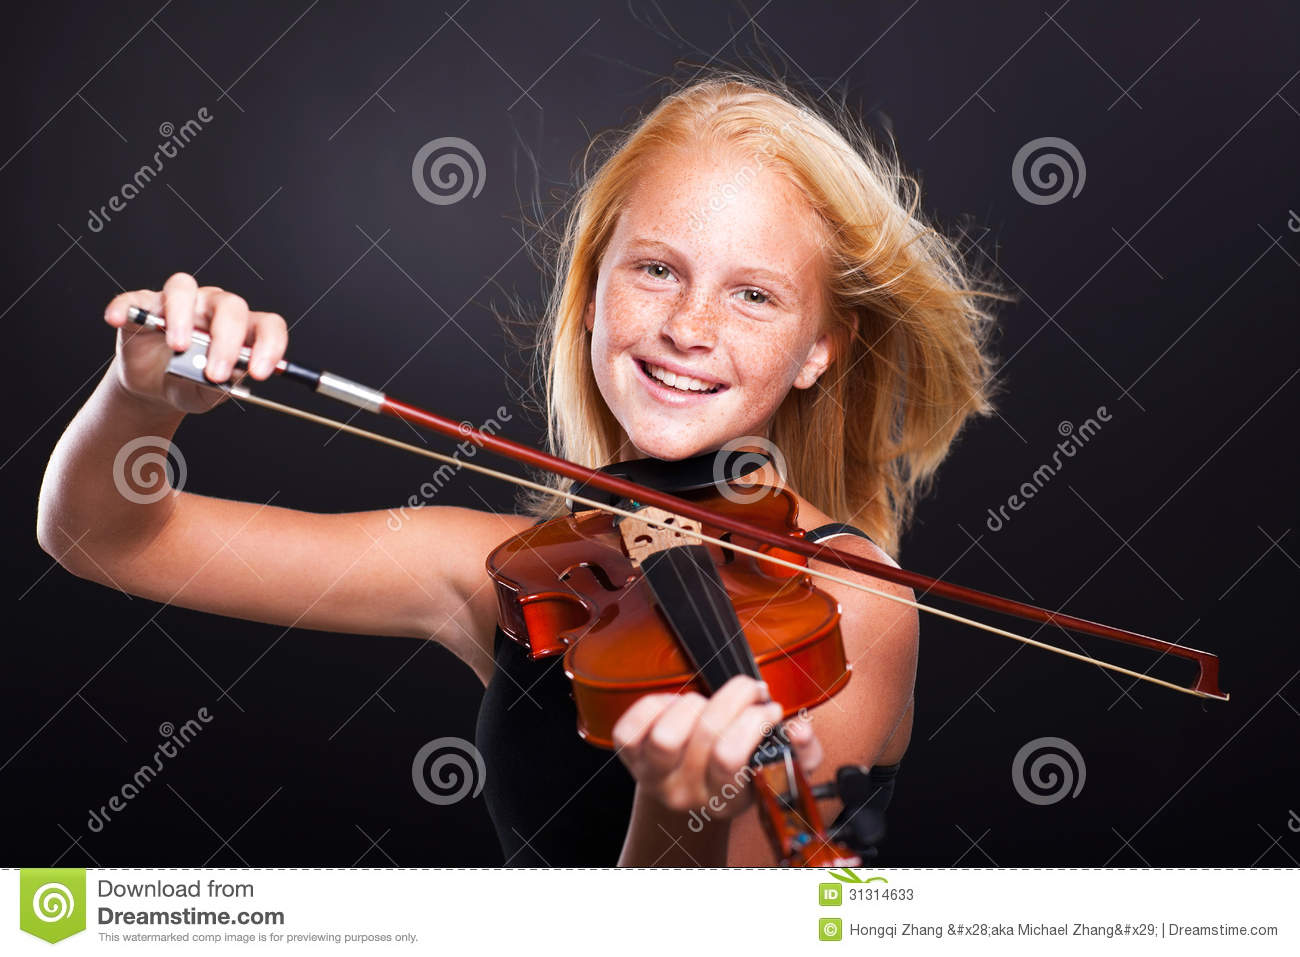 Cheerful preteen girl playing violin on black background.